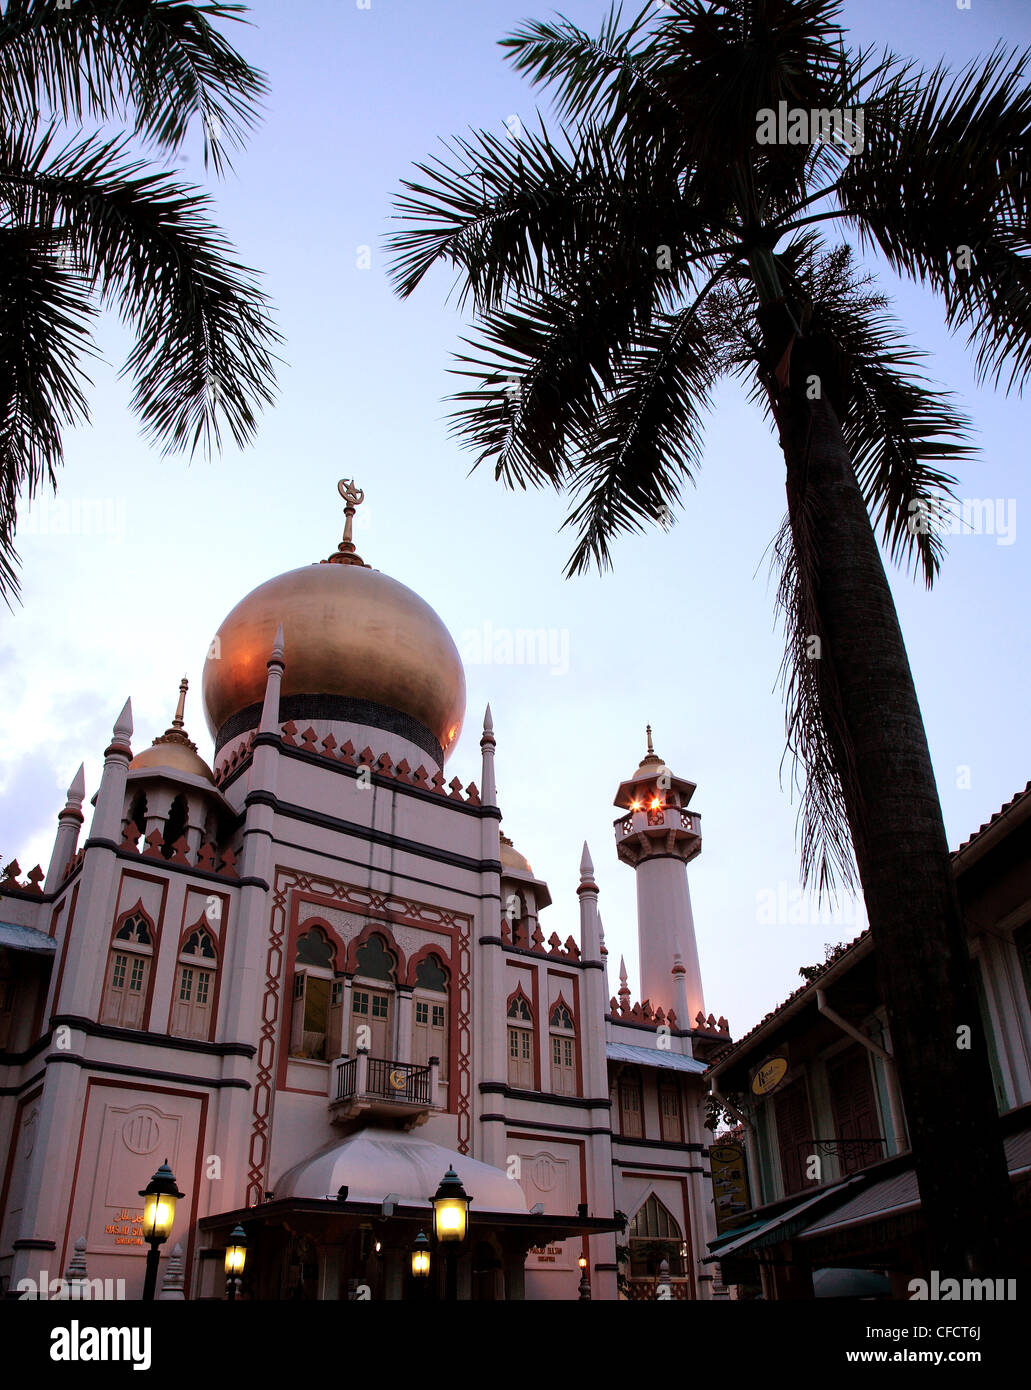 The Sultan Mosque, built in the 1820s, in Kampong Glam, Singapore, Southeast Asia, Asia - Stock Image